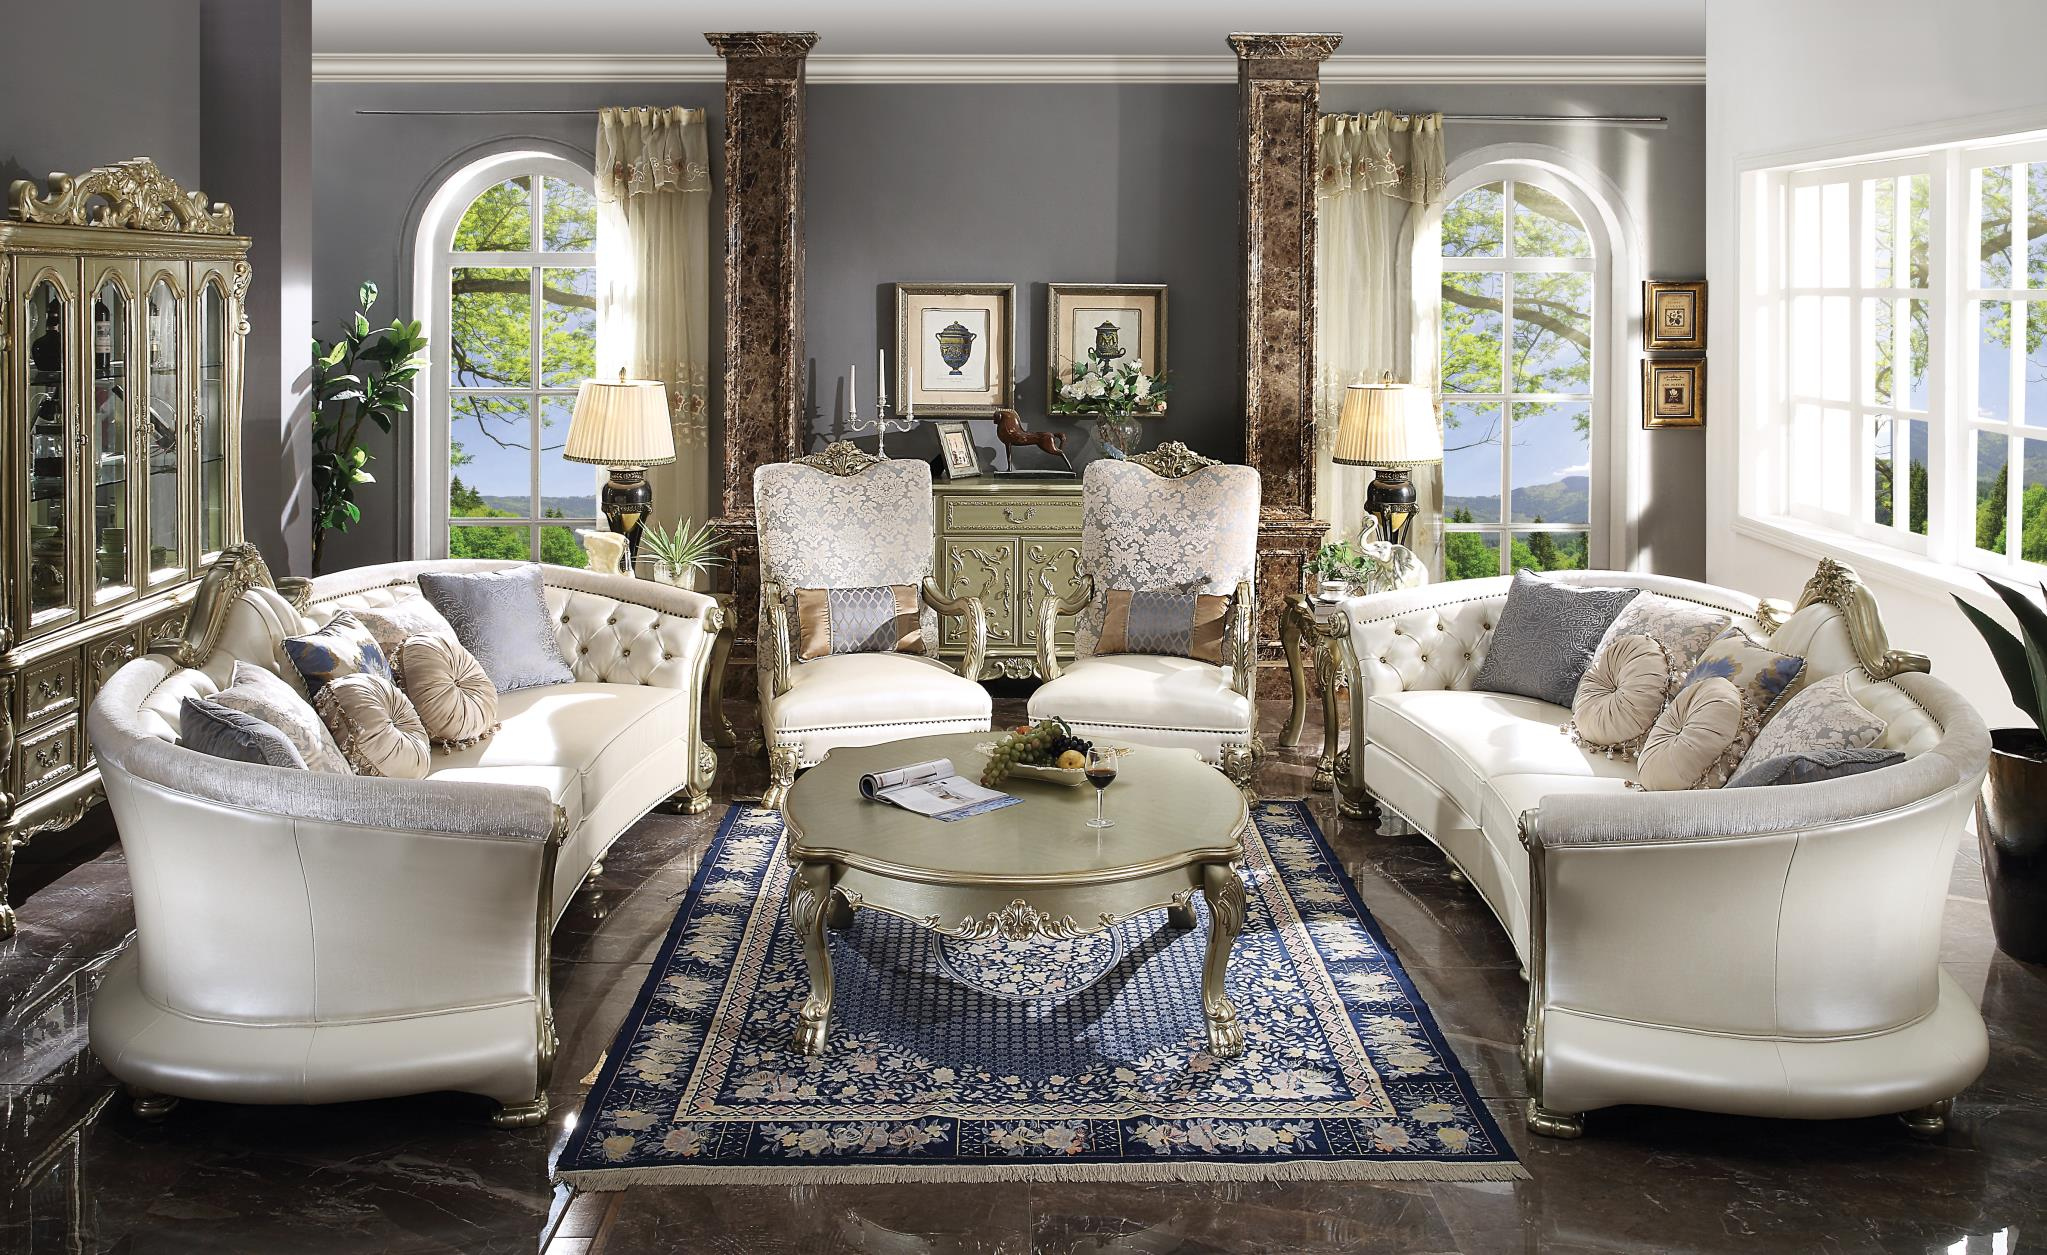 Complete Sofa Set w/ 2 Sofas, 2 Accent Chairs, Coffee Table and 2 End Tables